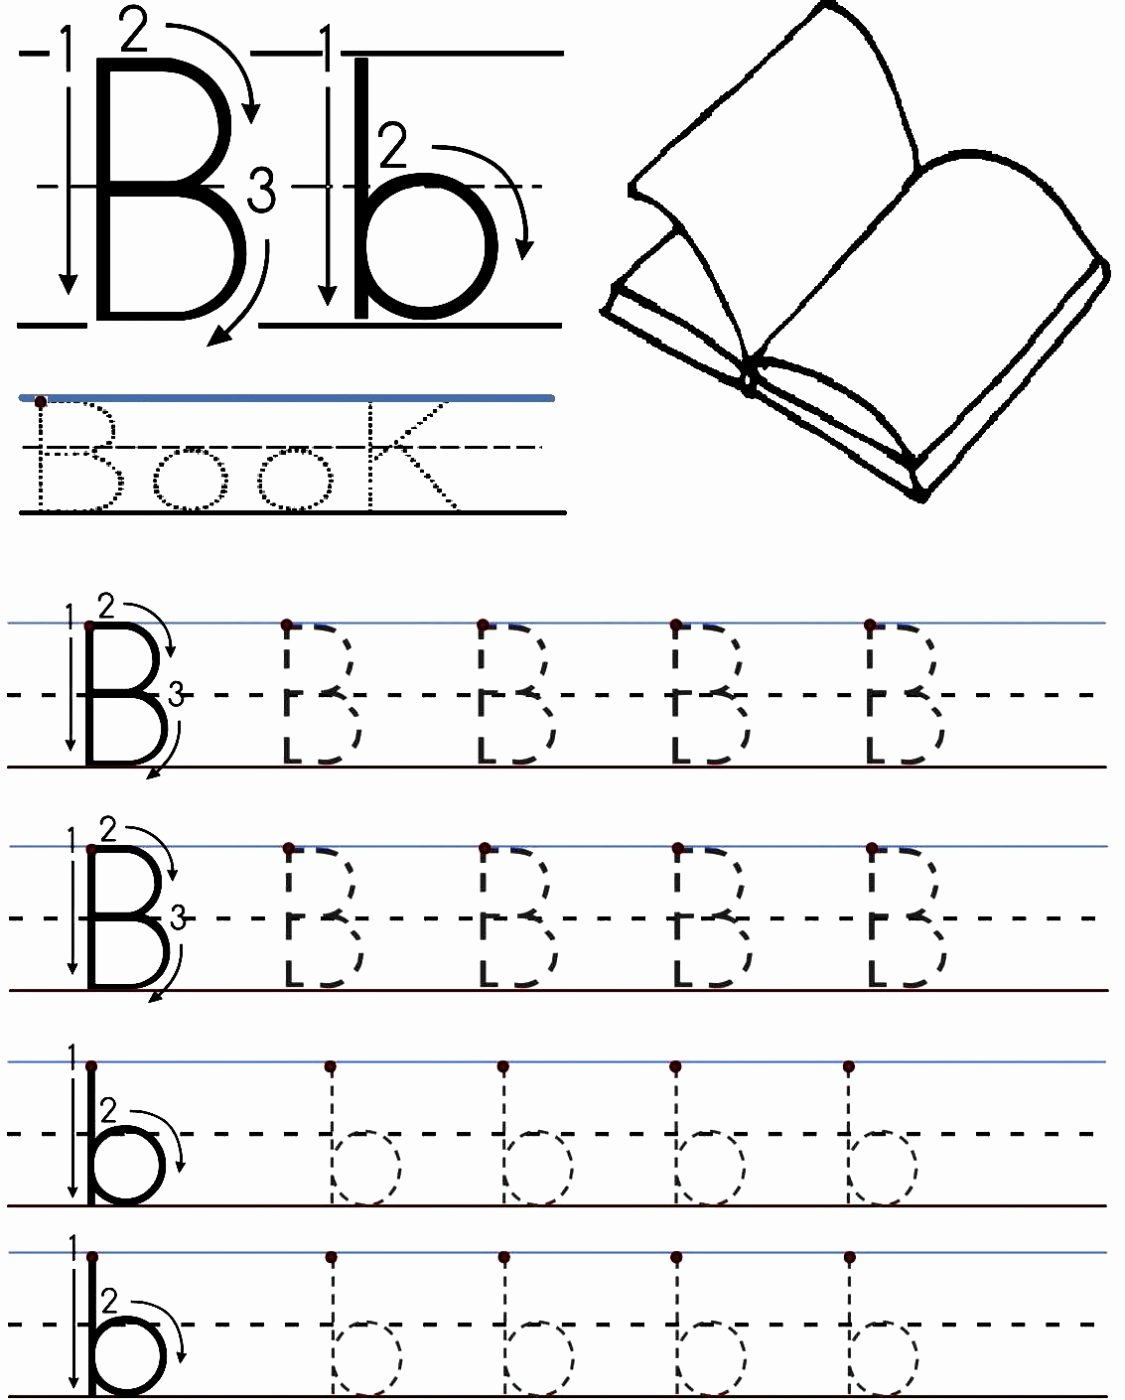 Letter B Worksheets for Preschoolers Kids Letter B Worksheets for Free Download Letter B Worksheets